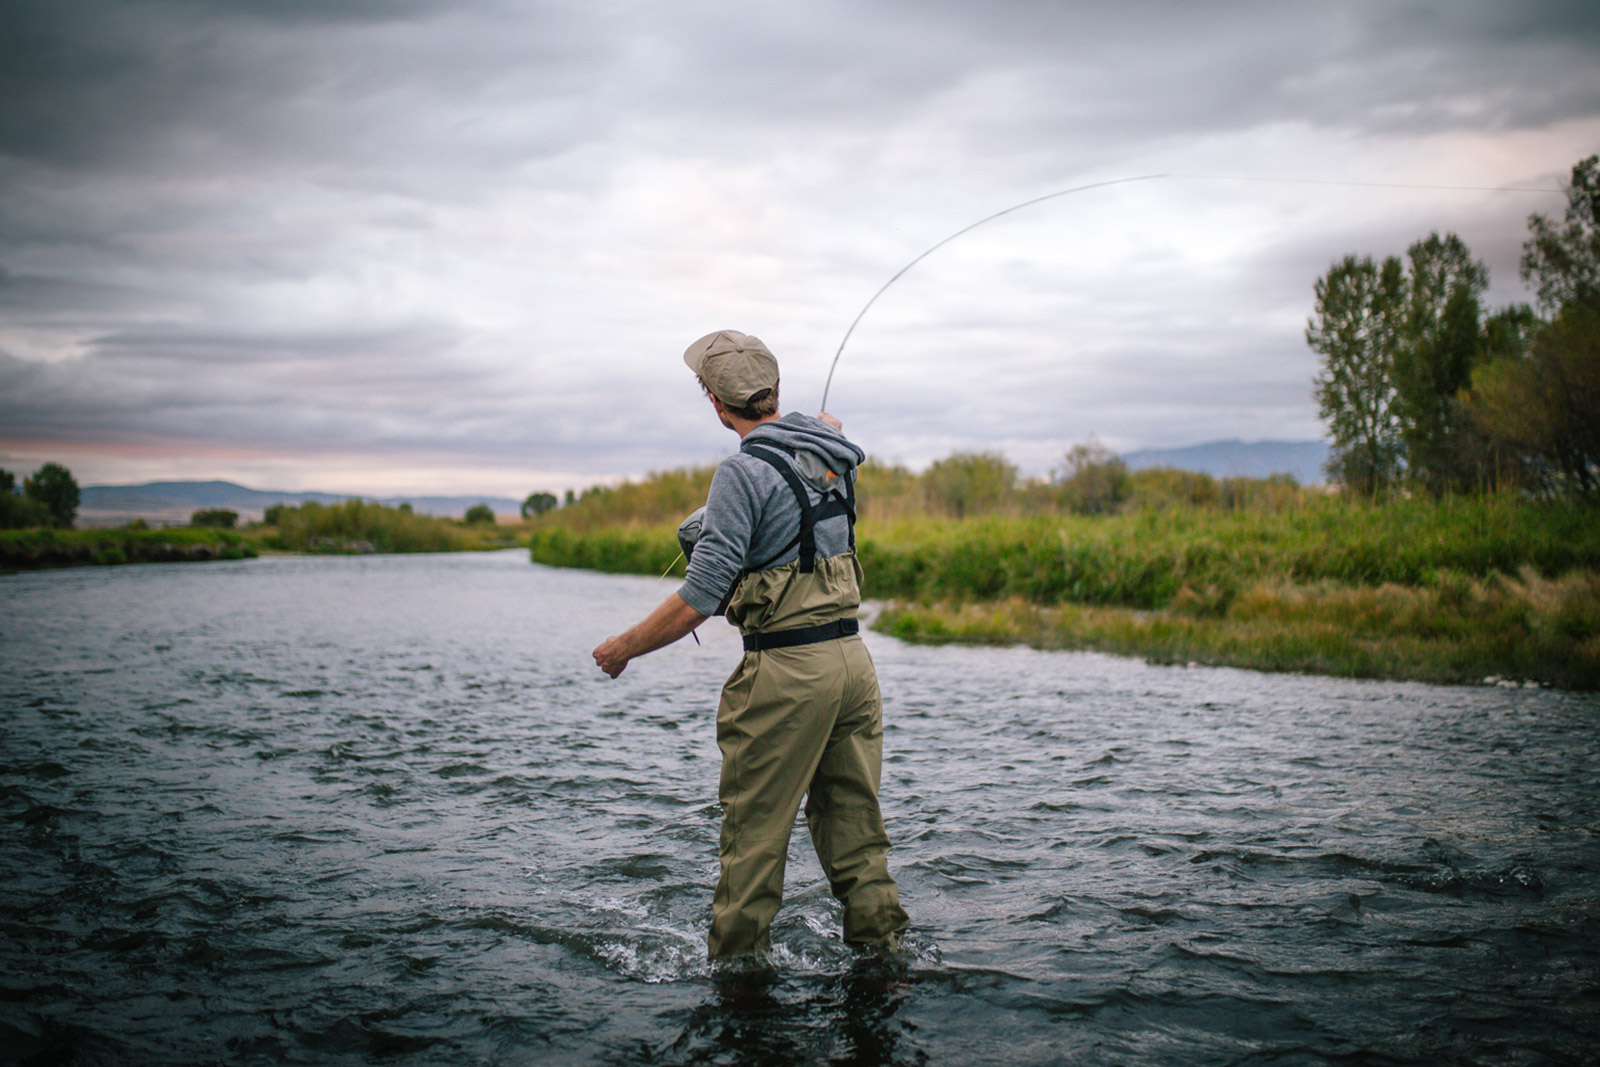 Patrick Burr casts a line in the East Gallatin River in this Montana photography session.